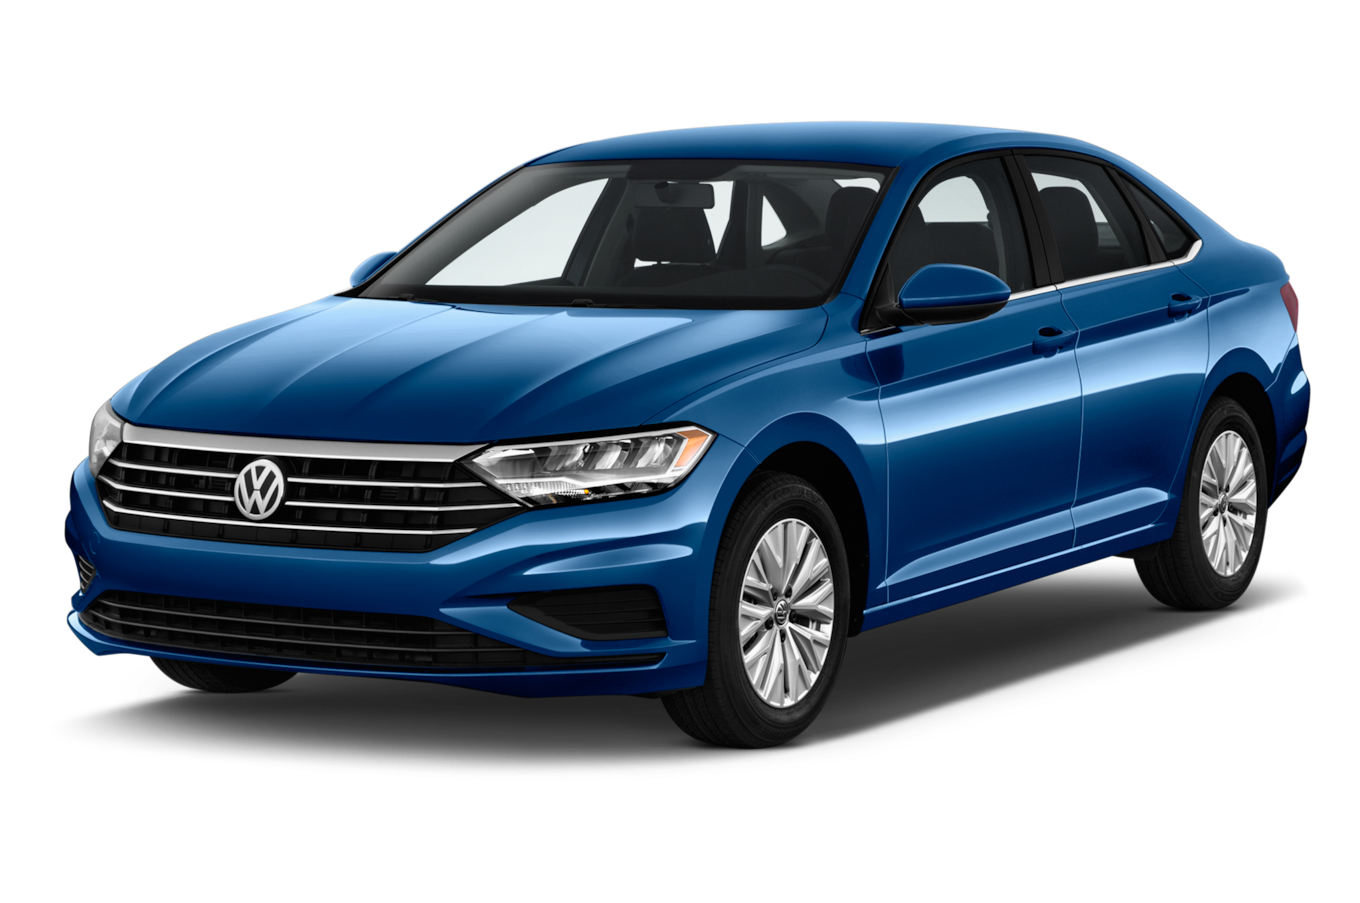 31 The 2020 Volkswagen Jetta Owners Manual Interior for 2020 Volkswagen Jetta Owners Manual